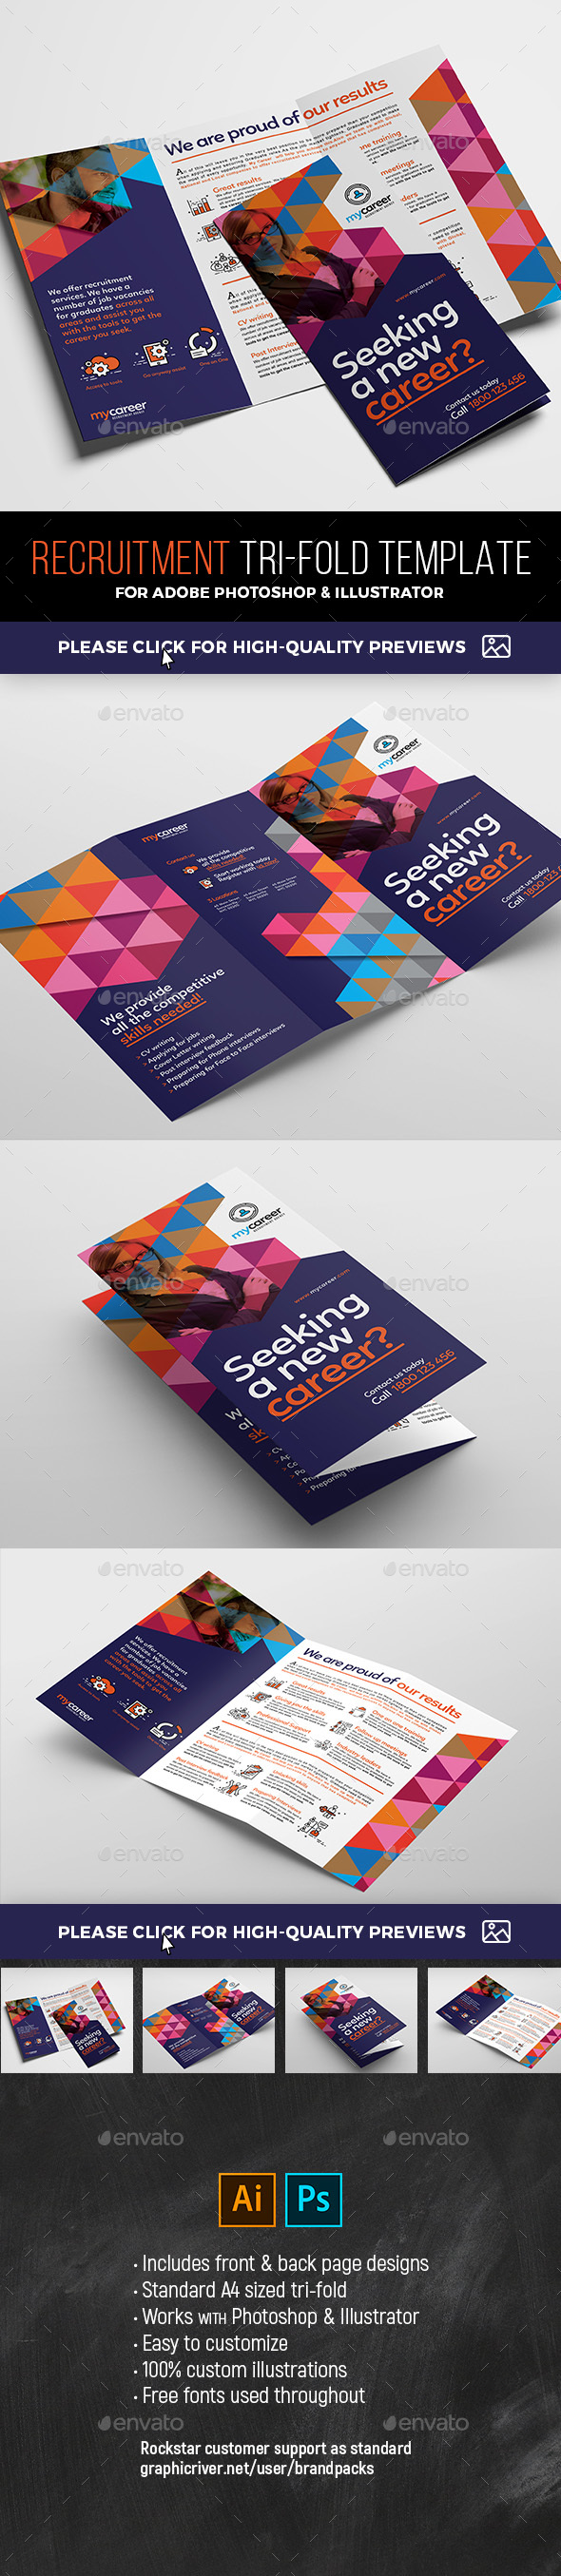 Recruitment Agency Tri-Fold Brochure Template - Corporate Brochures